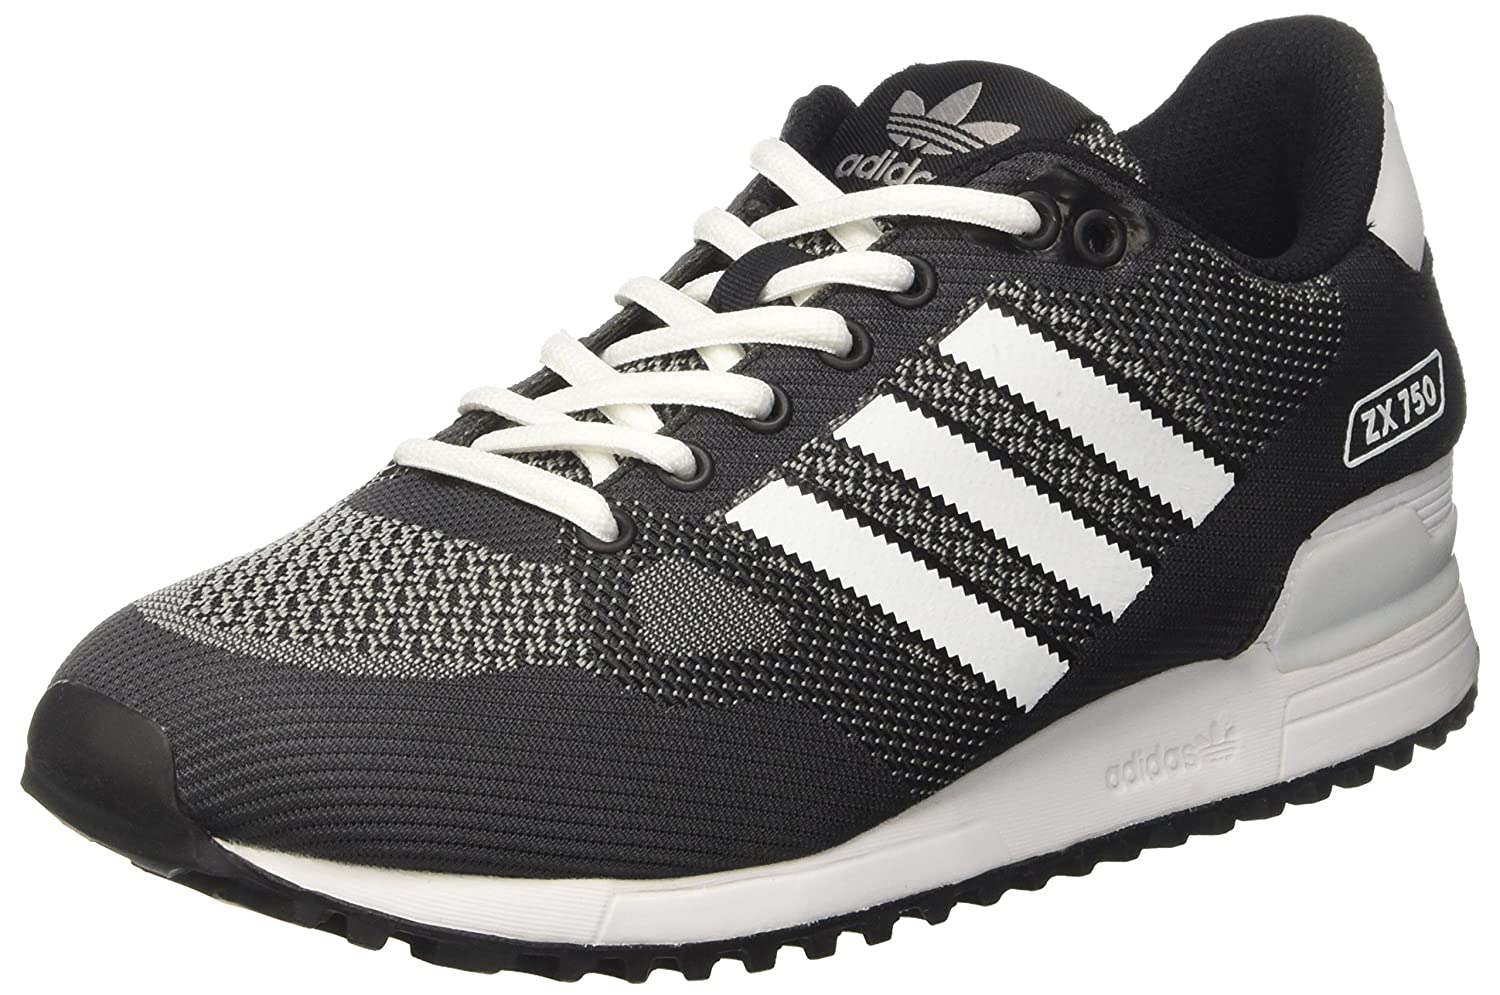 ced9e0651 Amazon.com  adidas - ZX 750 WV - BB1222 - Color  Black-Blue - Size  7.0   Shoes